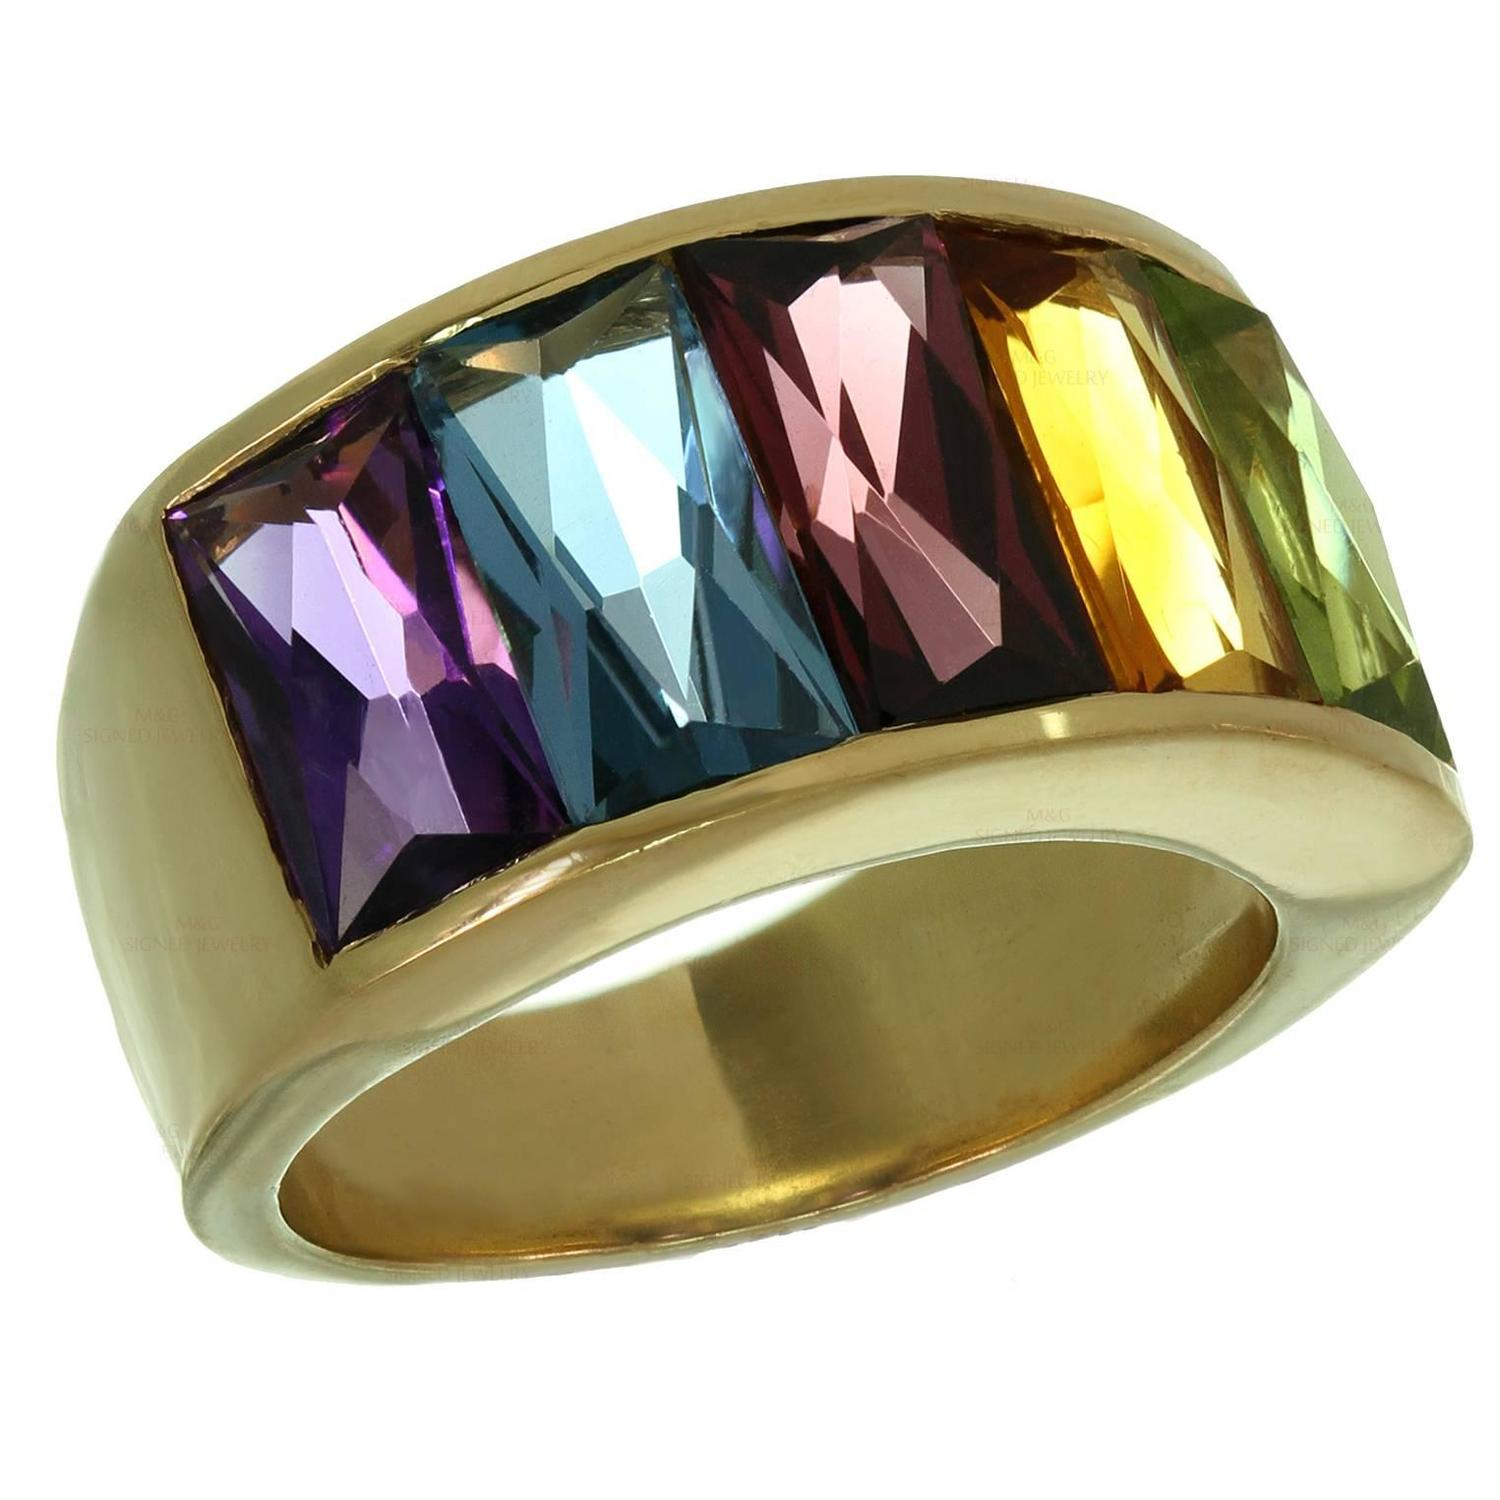 rings pride wedding steel shop kapow stainless gay hollow ring gifts rainbow band free plated